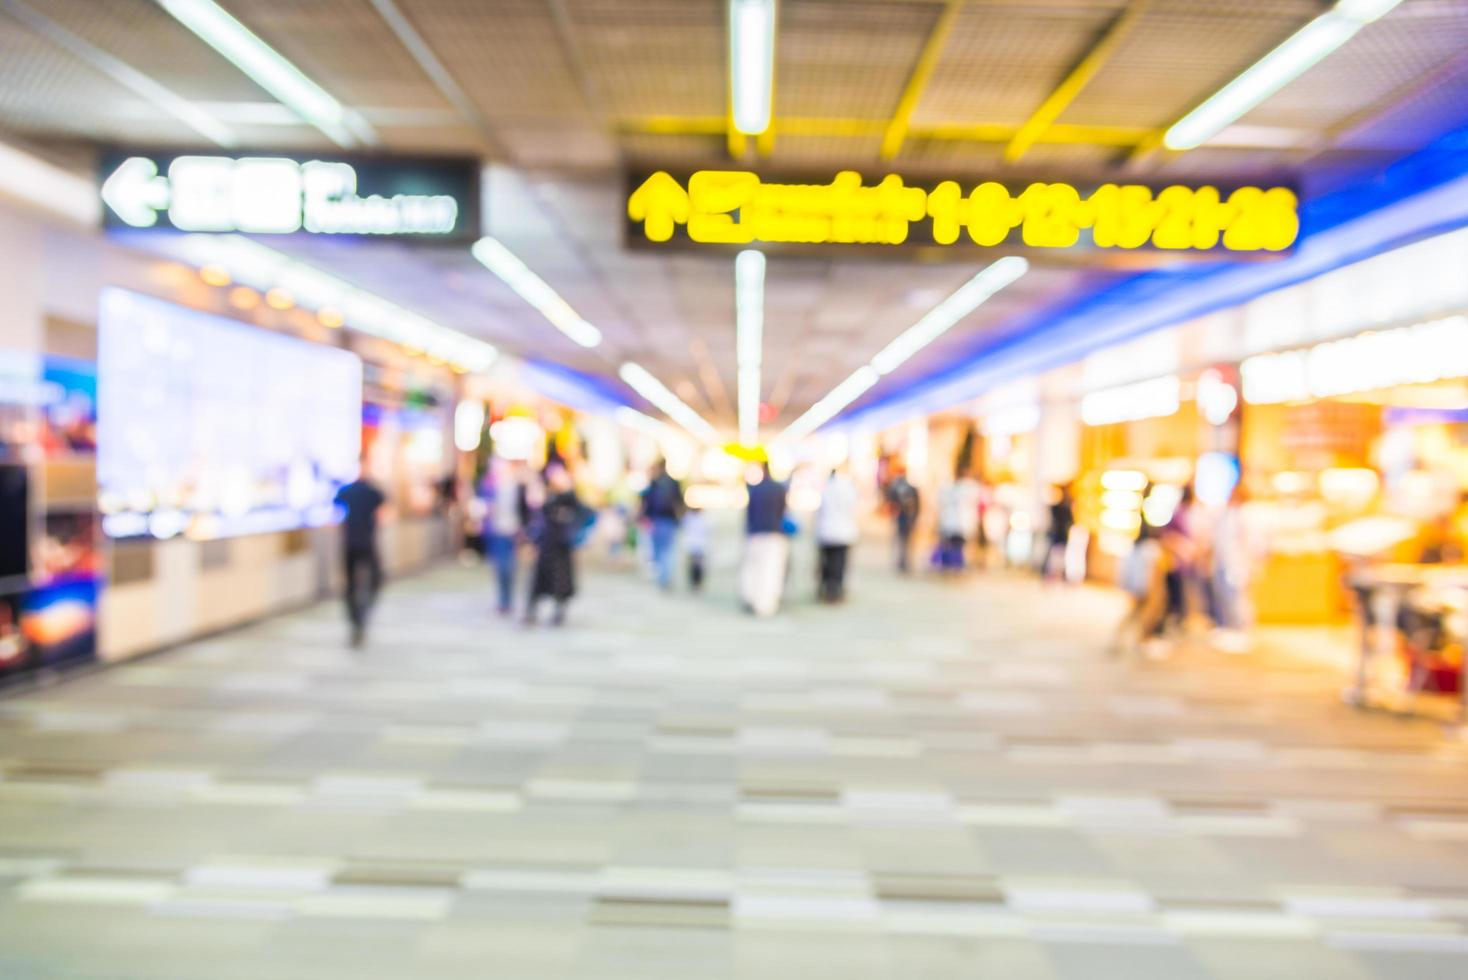 abstract luchthaven interieur achtergrond wazig foto